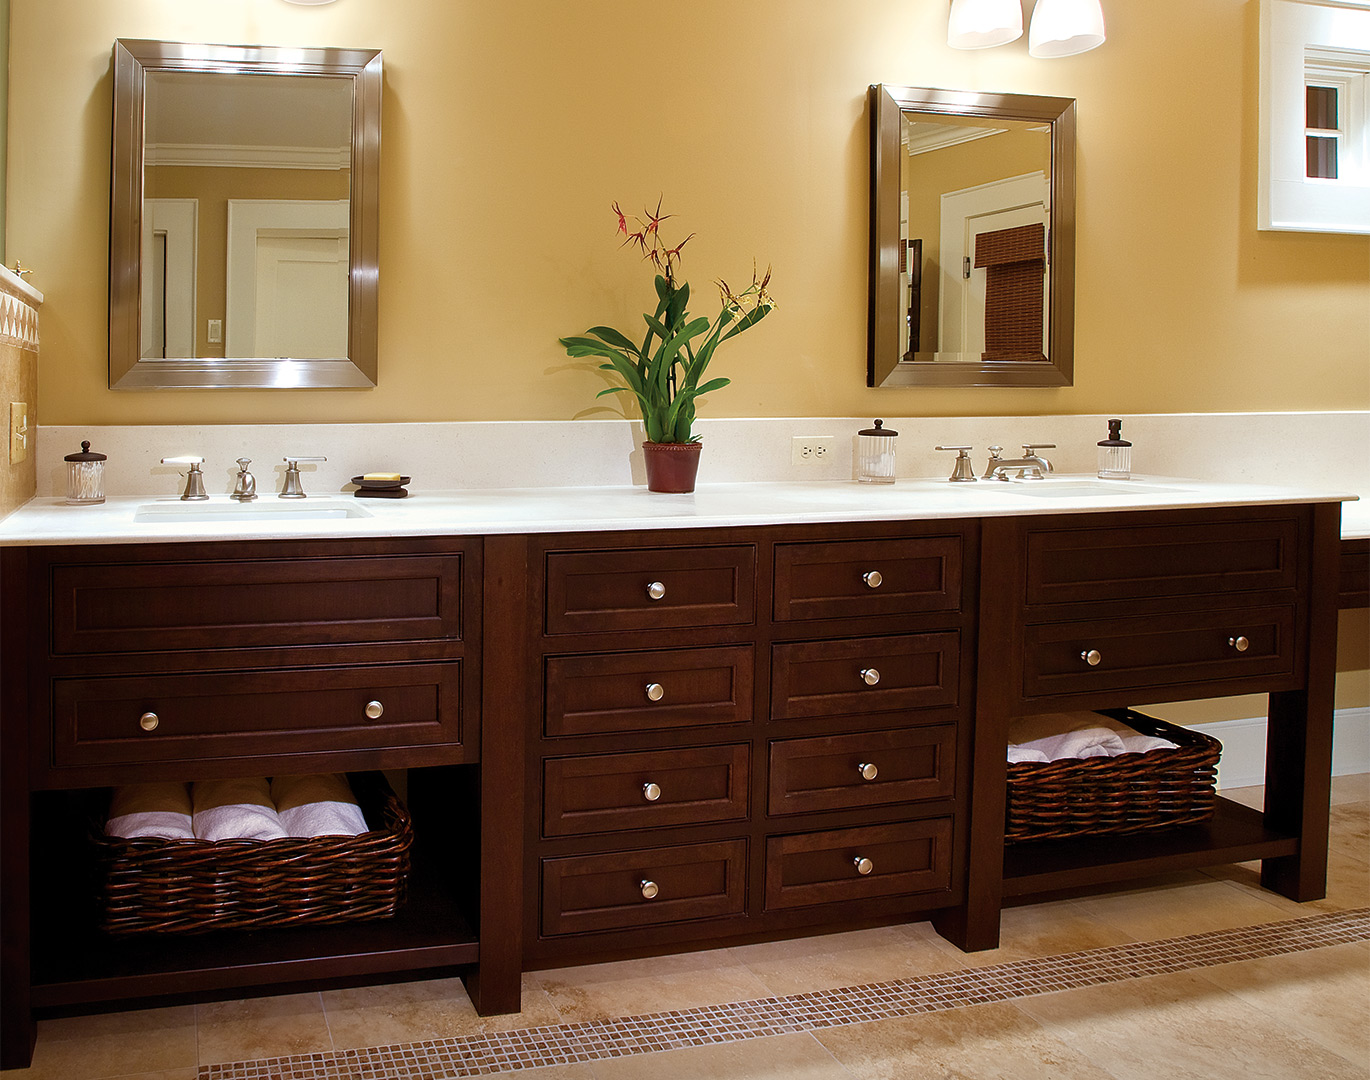 Fancy Bathroom Vanities Arts & Crafts Style Bathroom Cabinets  Plain & Fancy Cabinetry